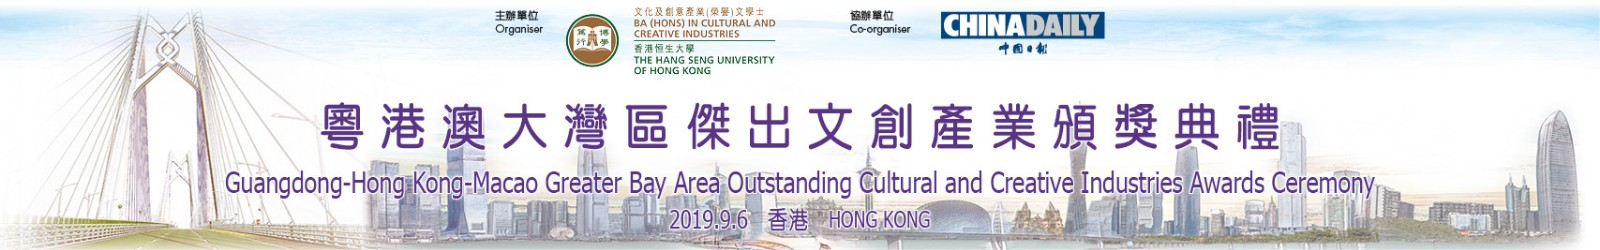 Guangdong-Hong Kong-Macao GBA Outstanding Cultural and Creative Industries Awards Ceremony